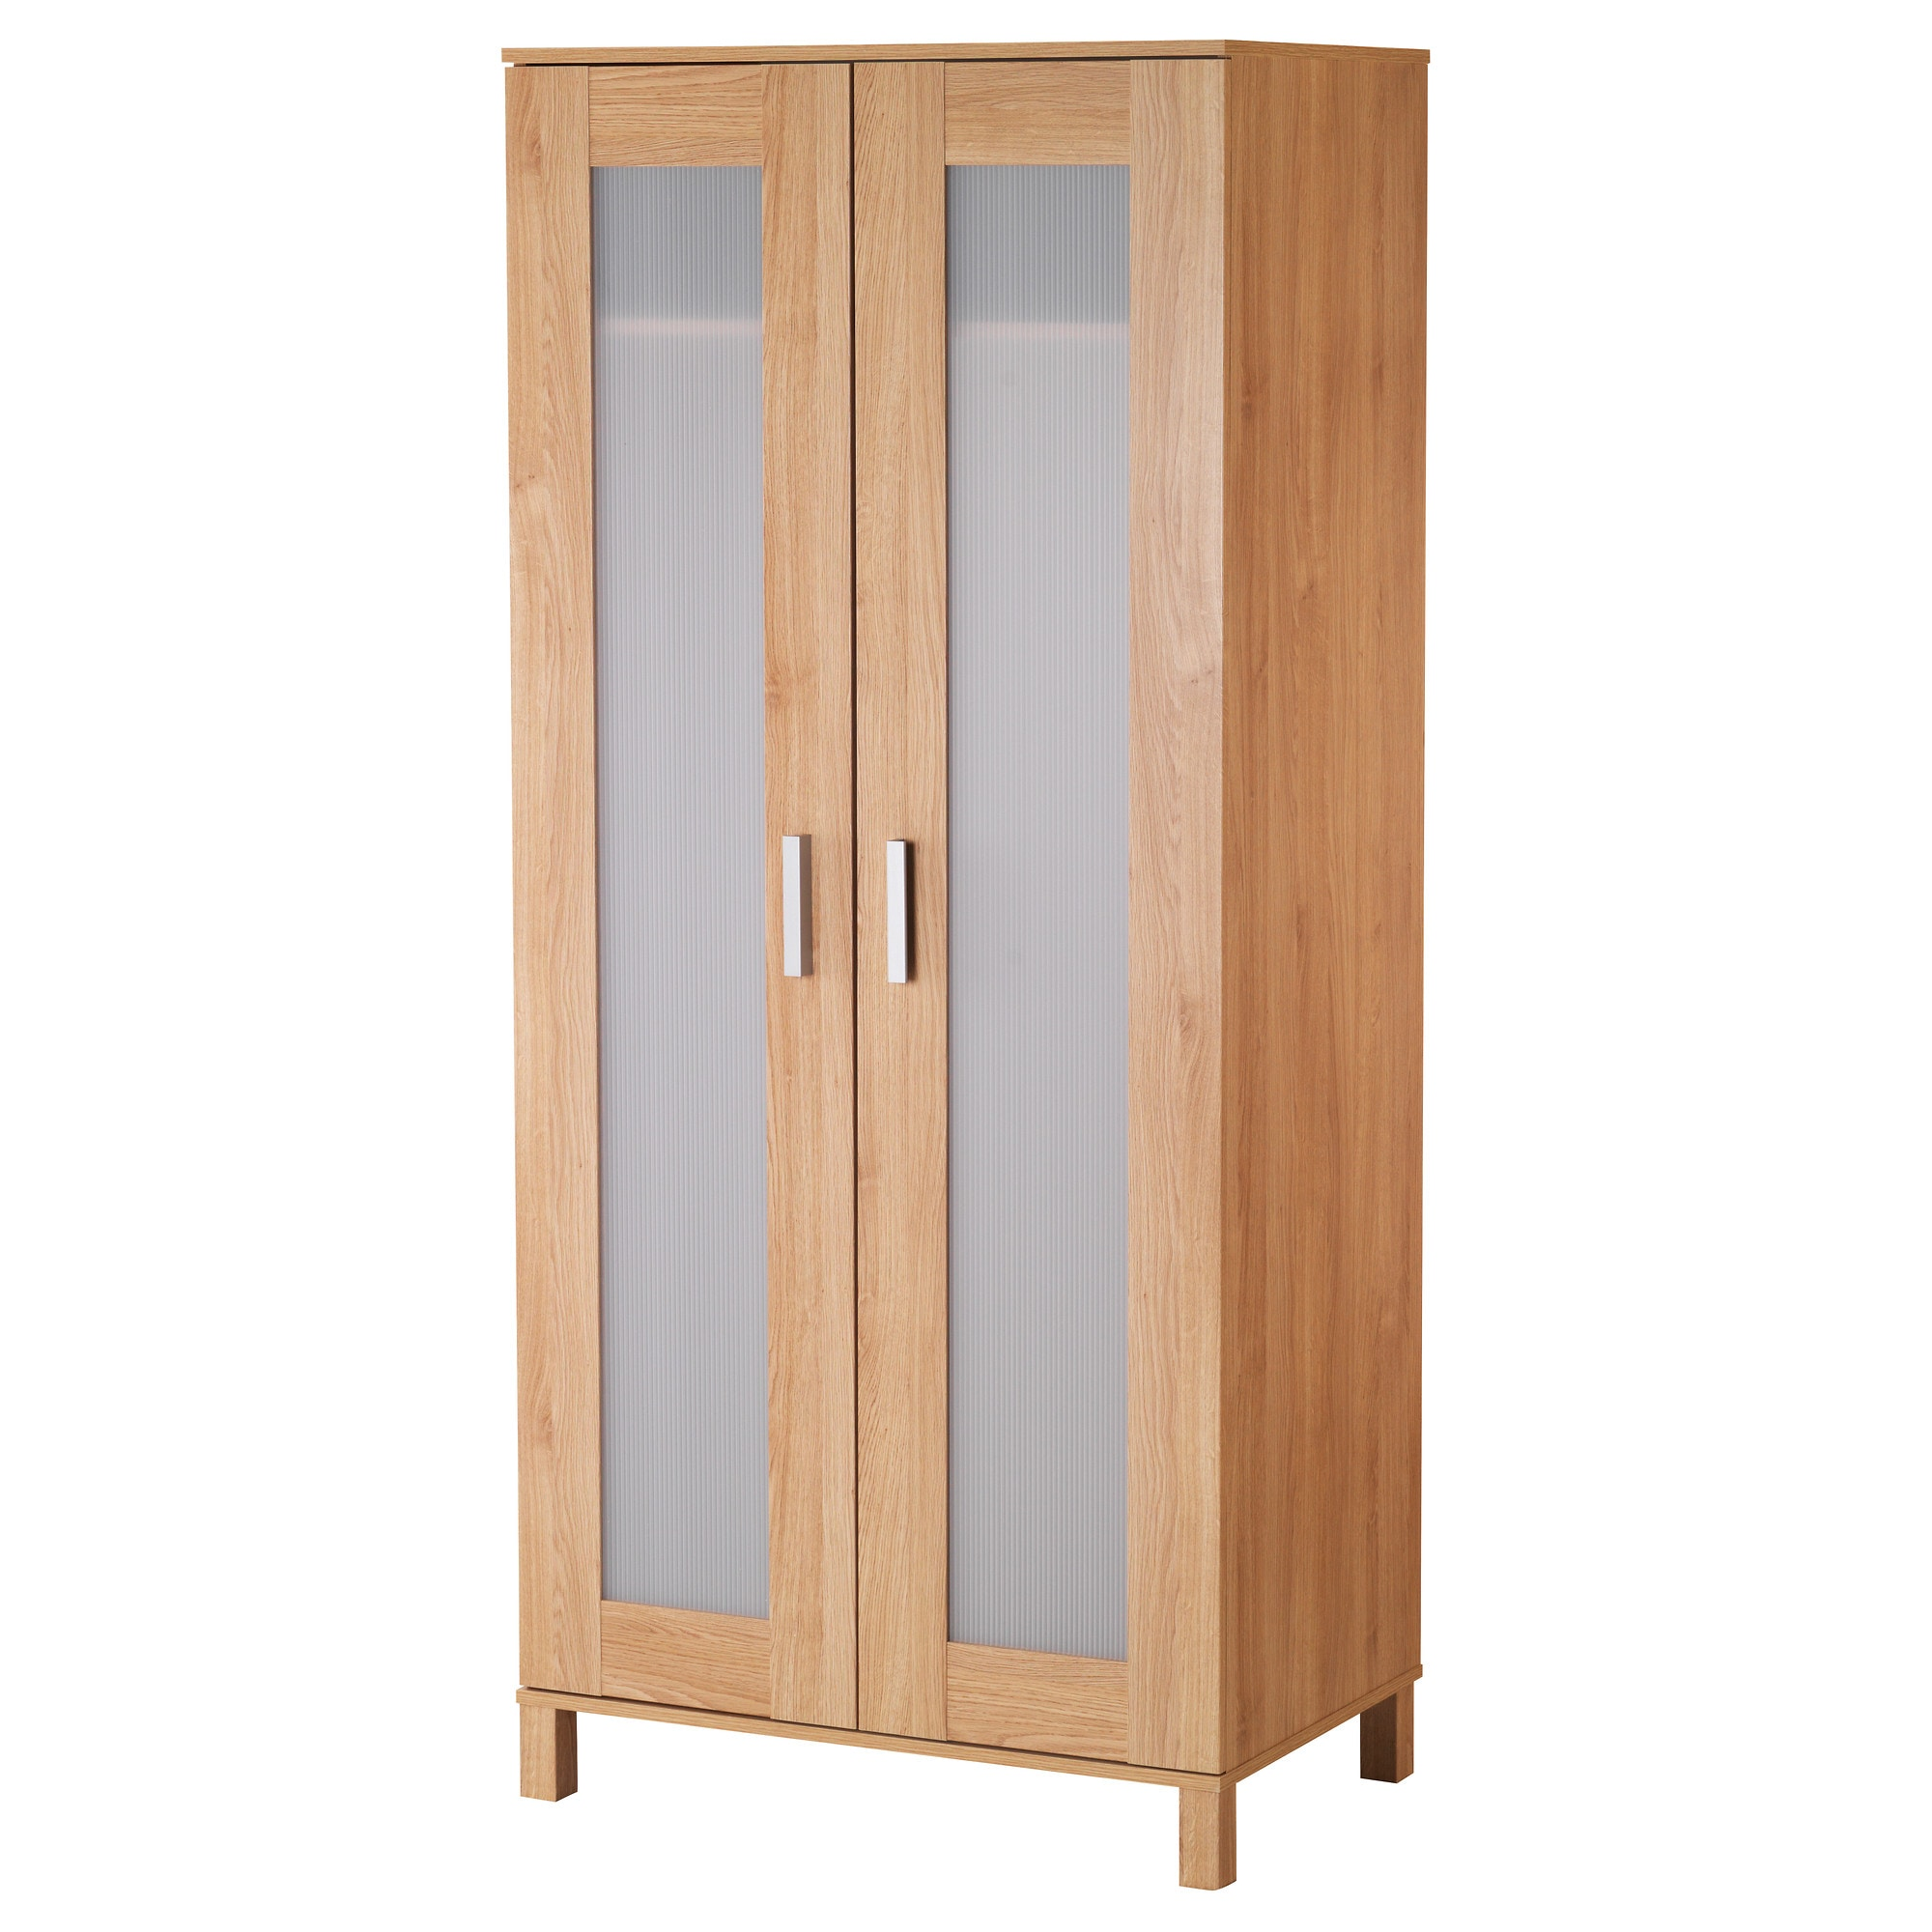 Ikea Aneboda Wardrobe Birch Veneer ~ IKEA Wardrobes Shop Online or In